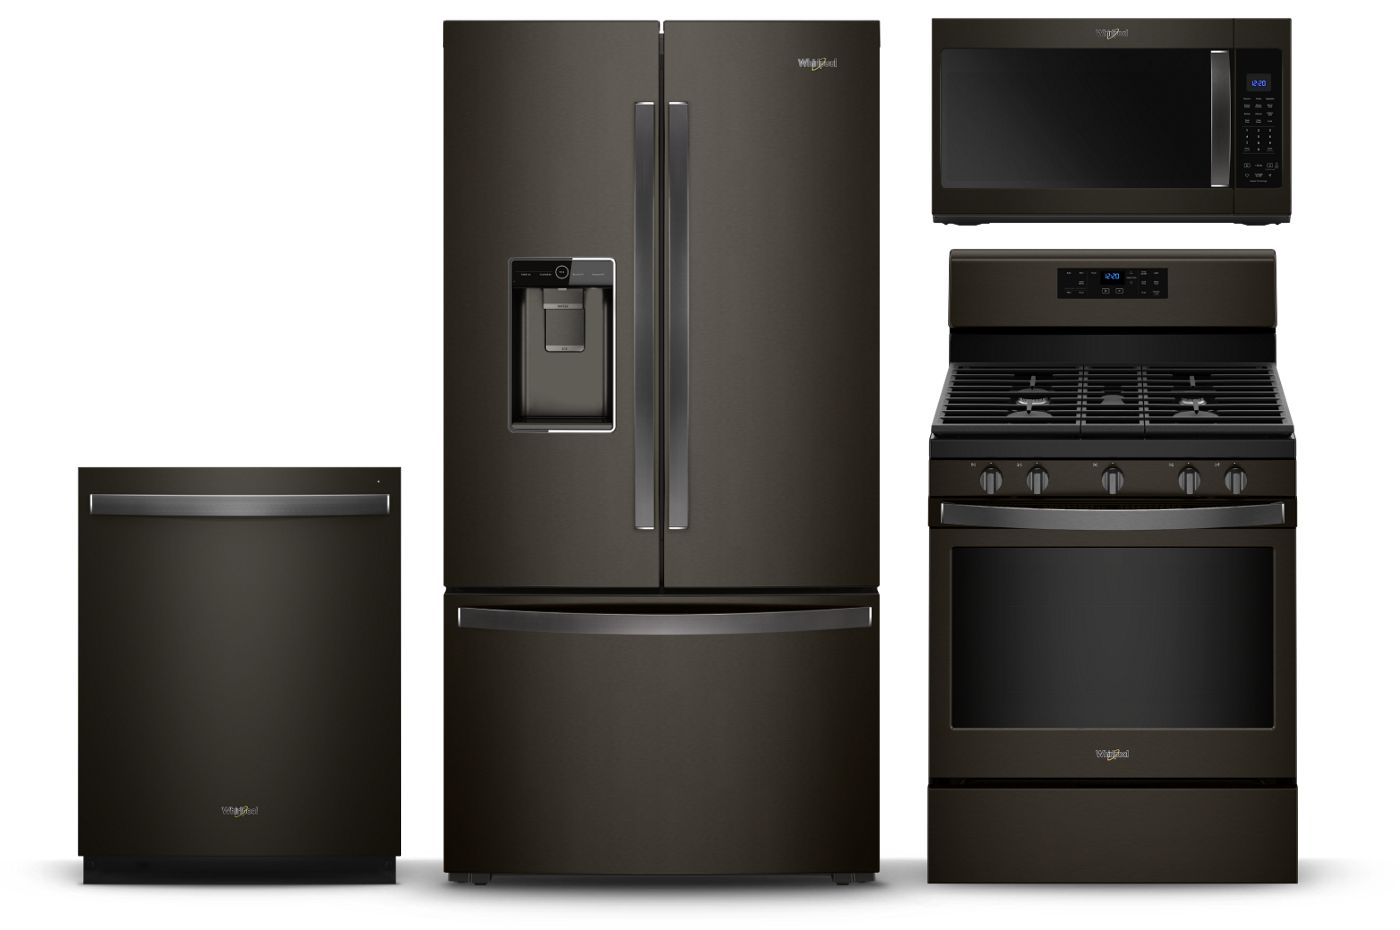 With Black Stainless Steel